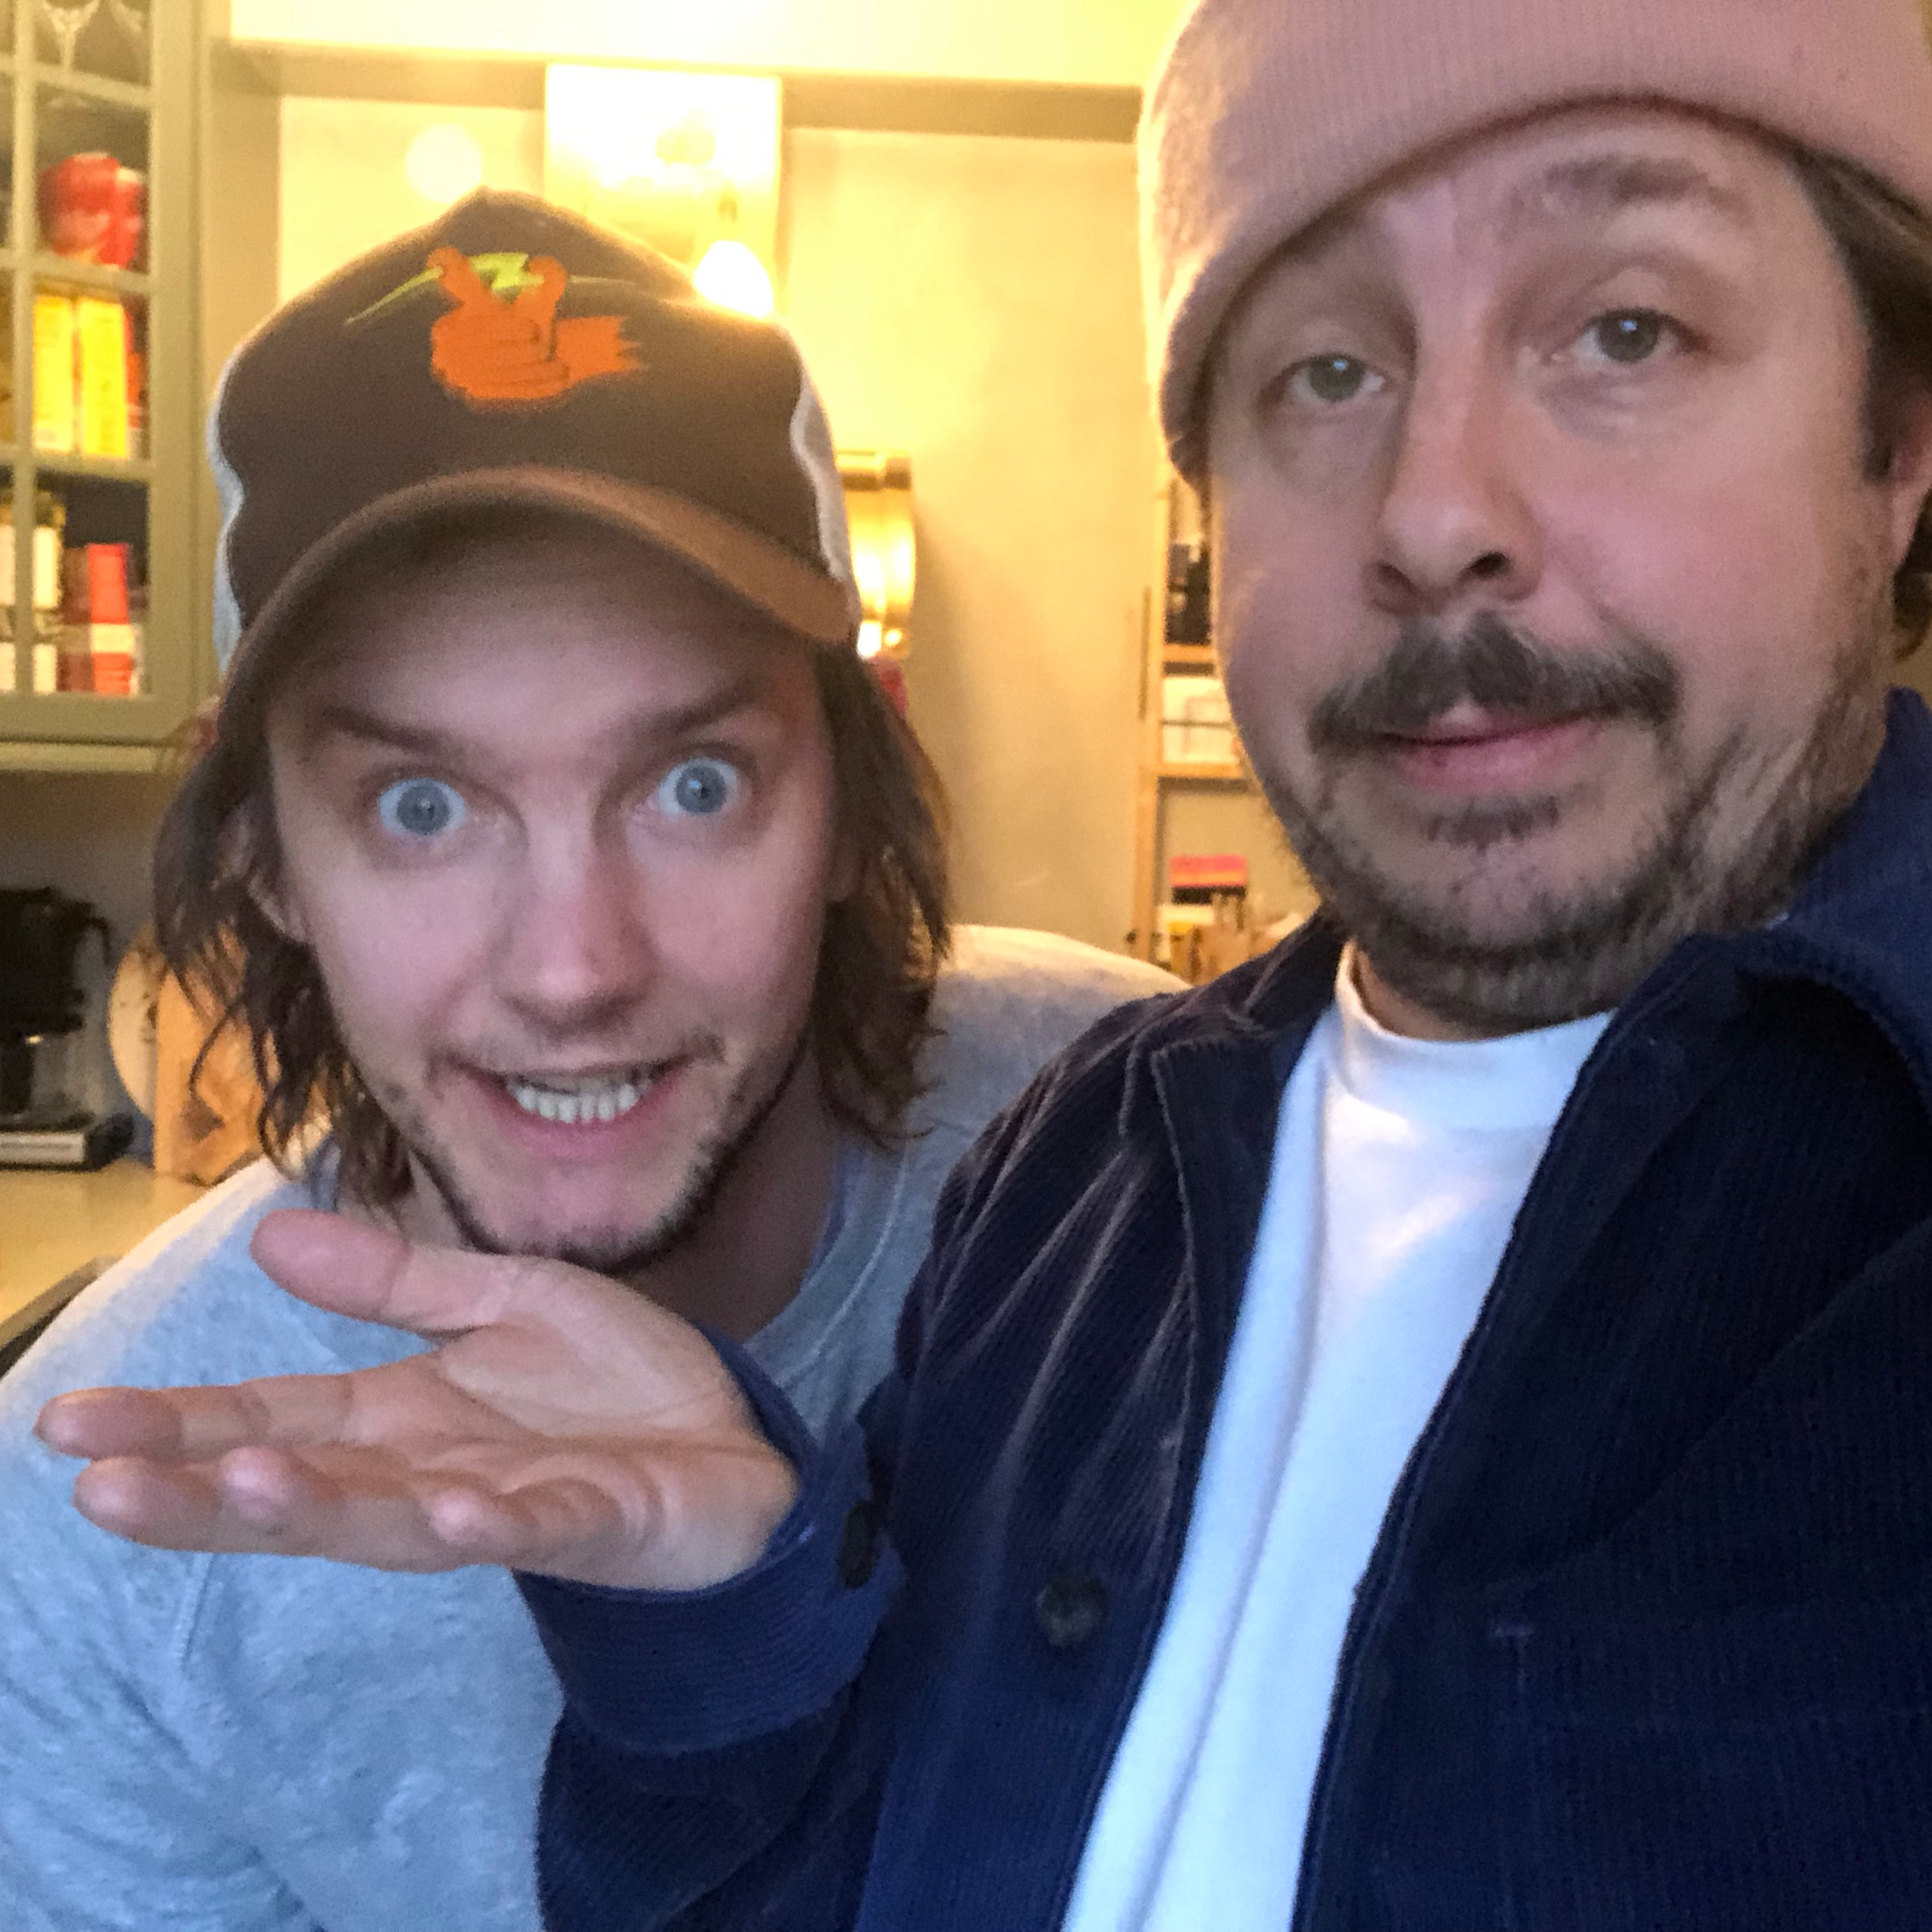 Macka 83: We like pizza in the morning